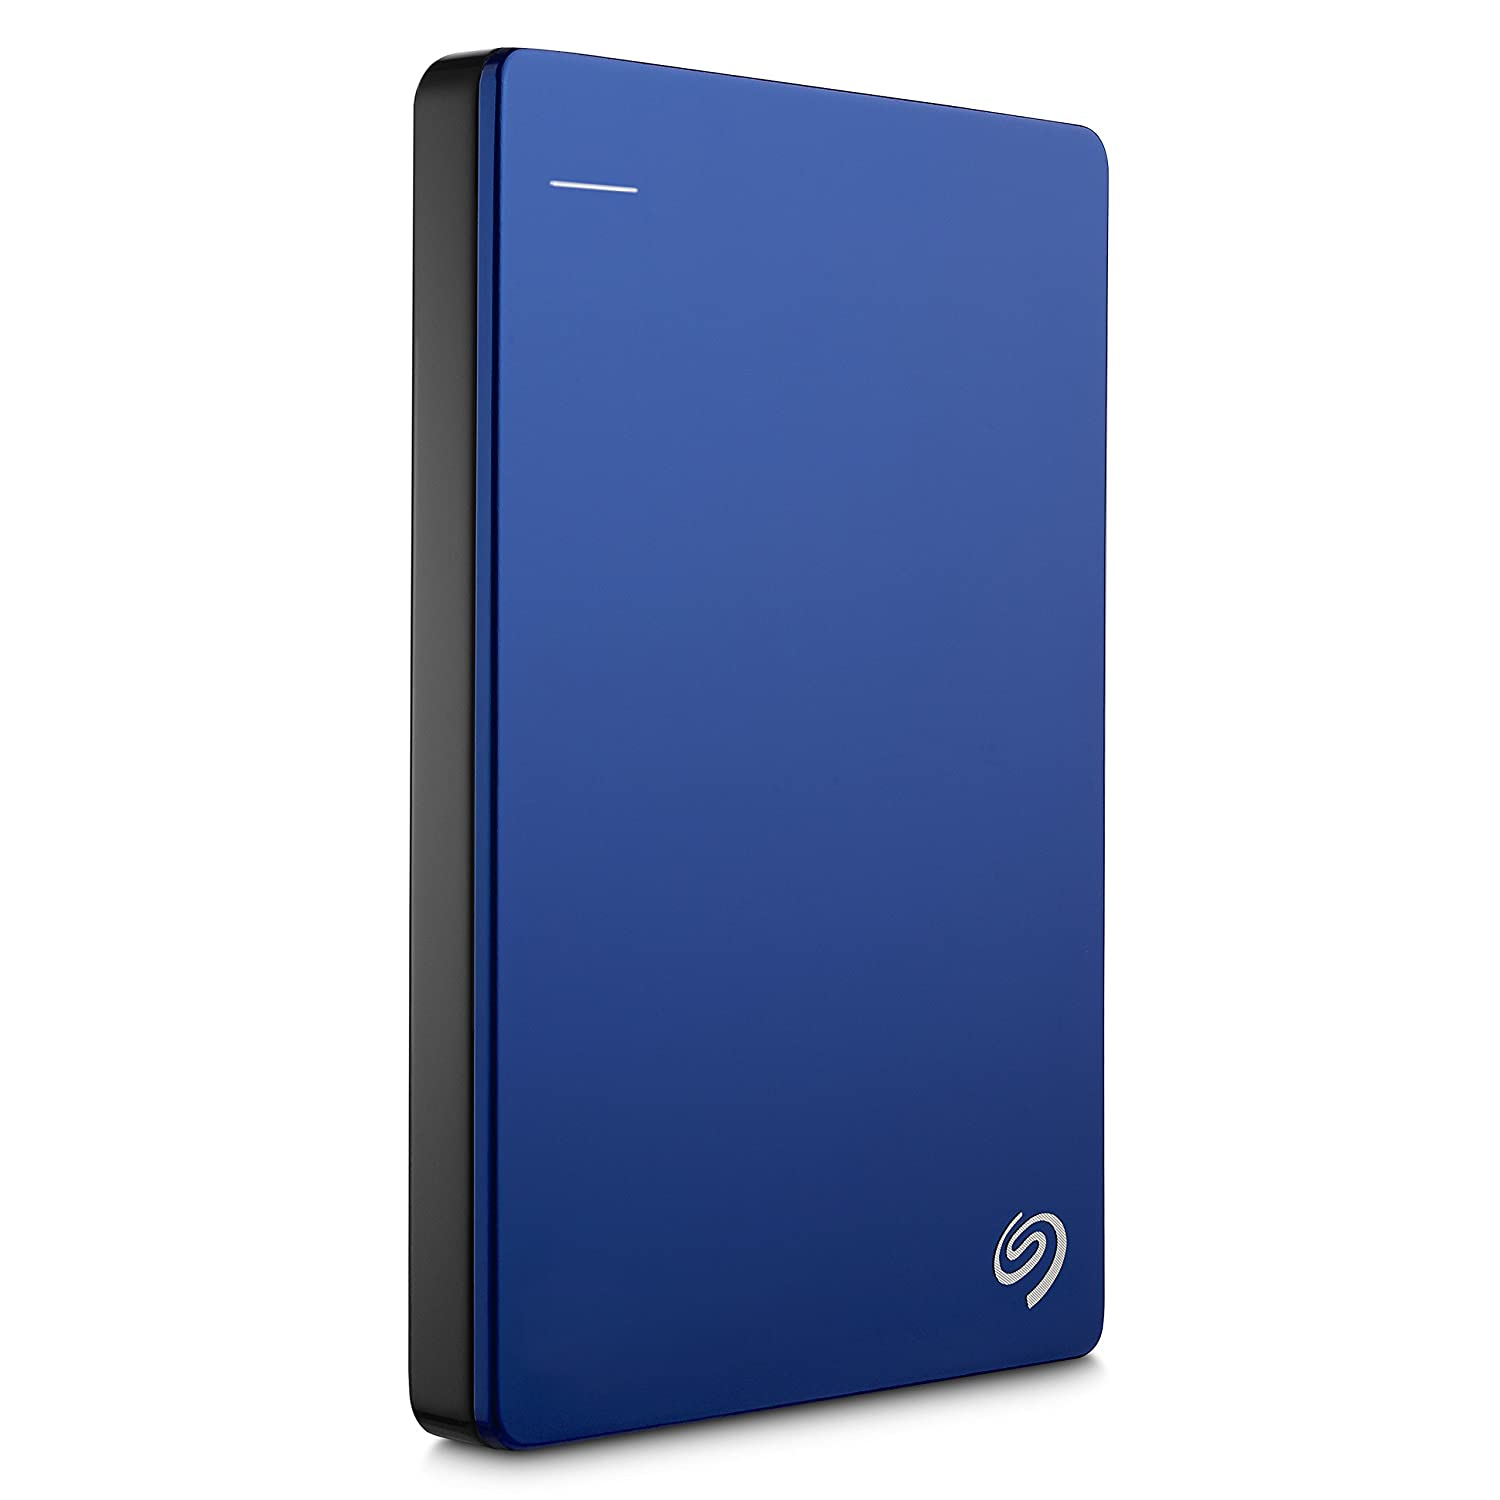 Blue USB 3.0 for PC//Mac Seagate Backup Plus Slim 1TB Hard Drive Portable HDD